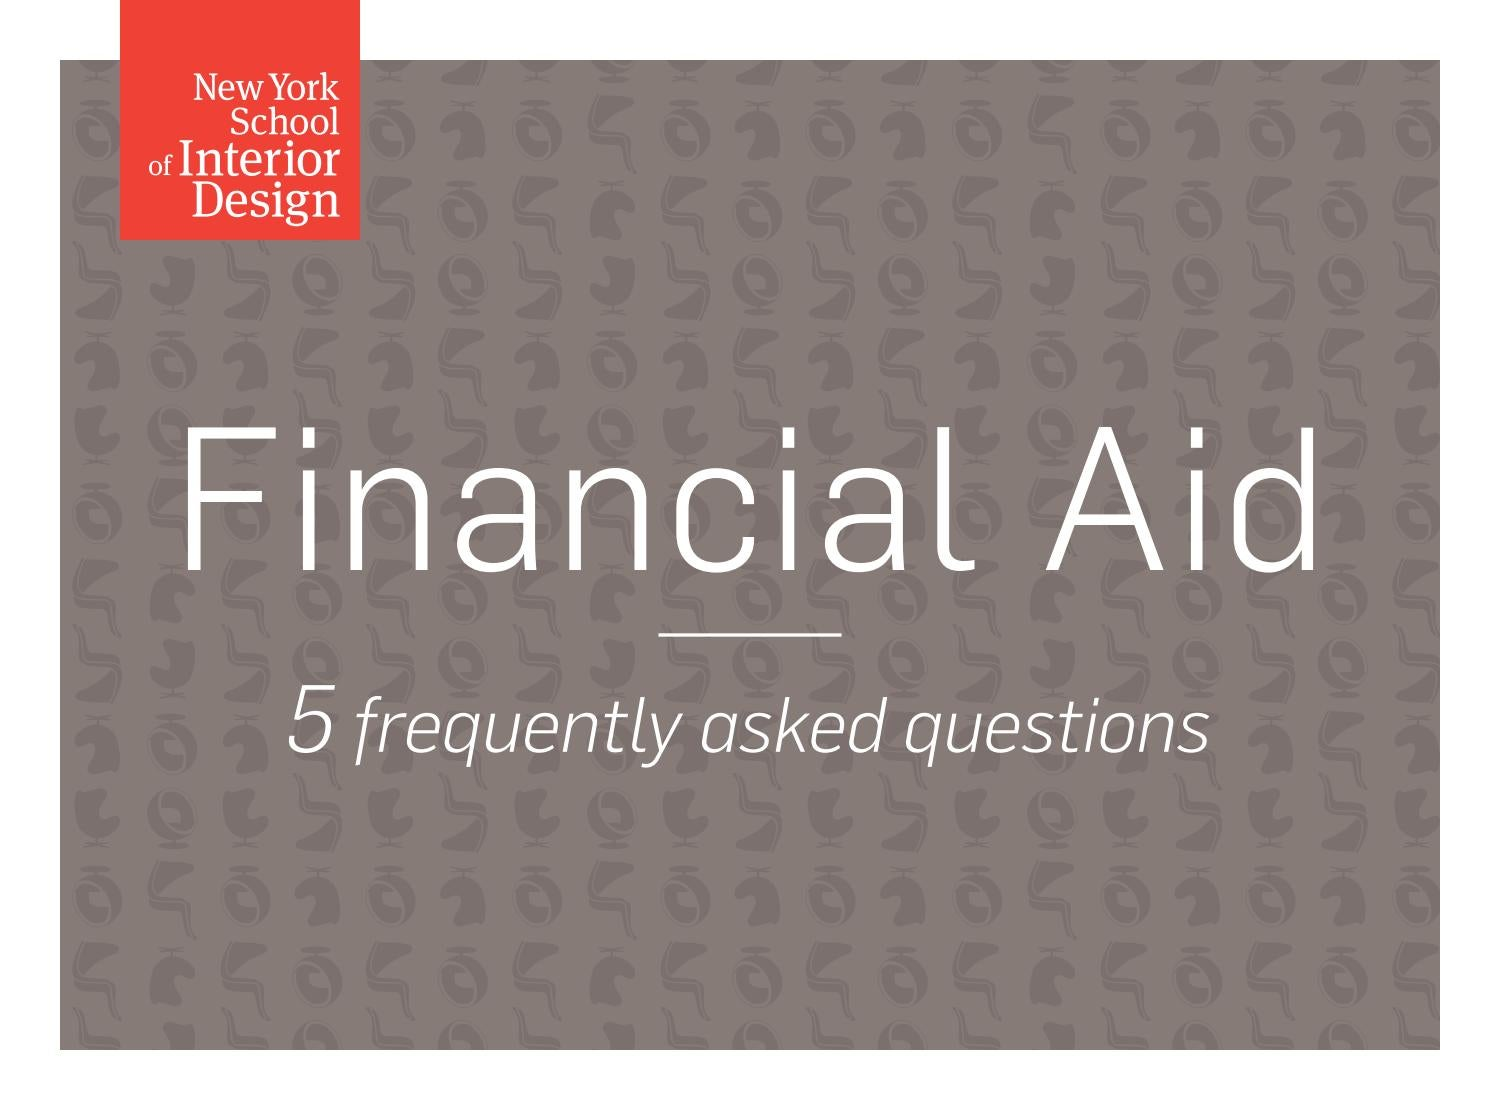 Financial Aid At Nysid By New York School Of Interior Design Issuu